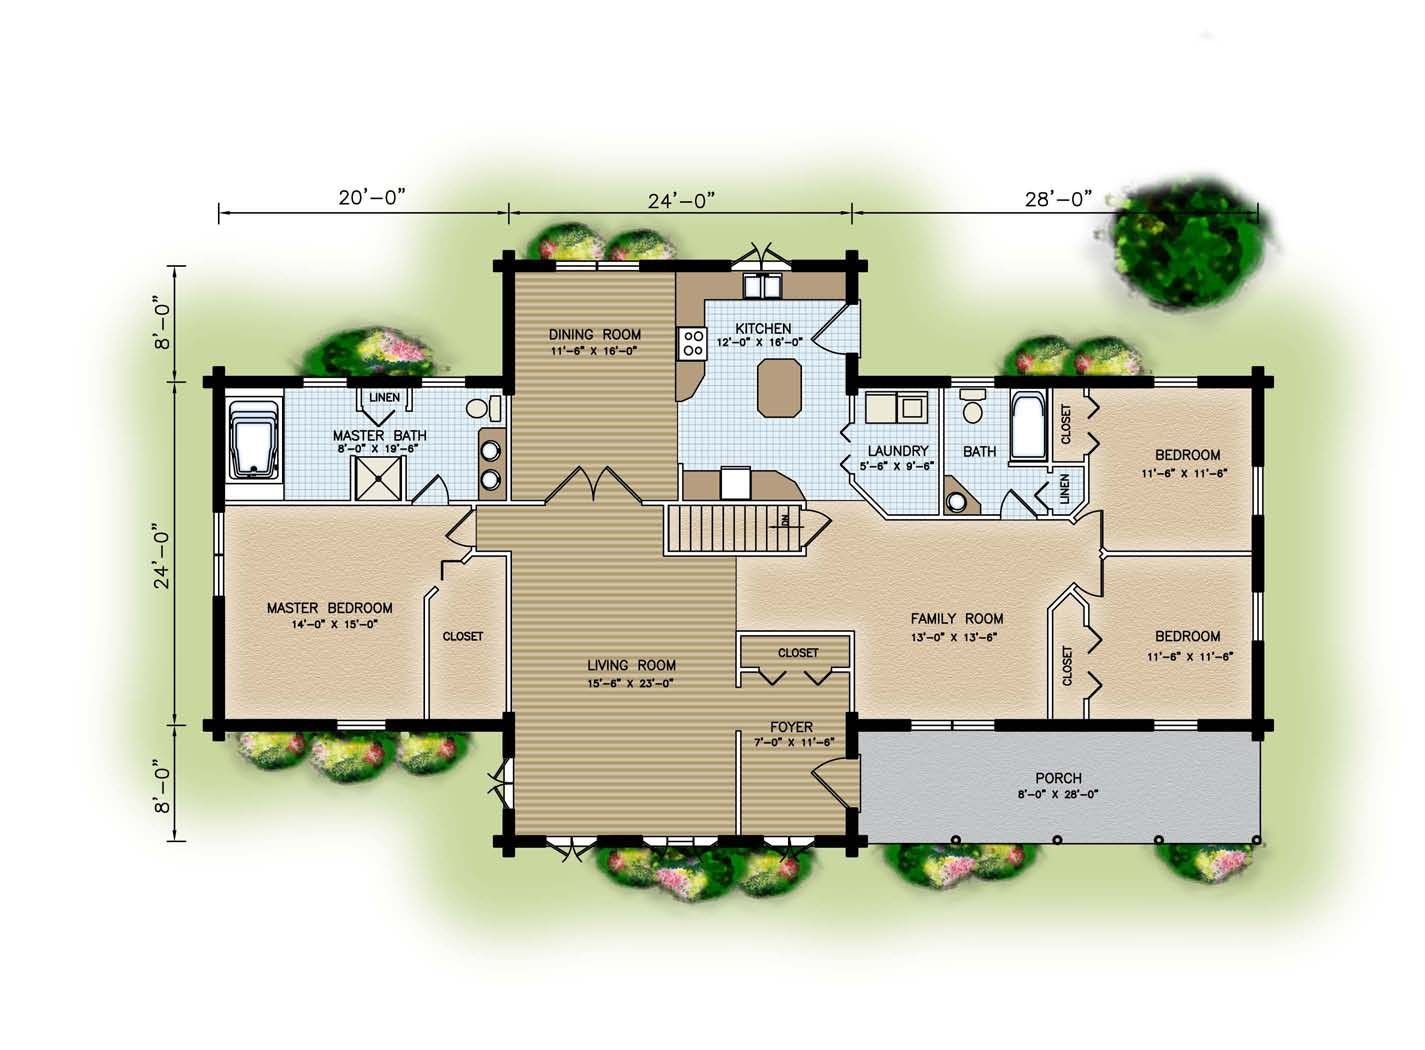 floorplan apartment designs and floor plans 63 apartment designs and floor plans - Floor Plans For Houses